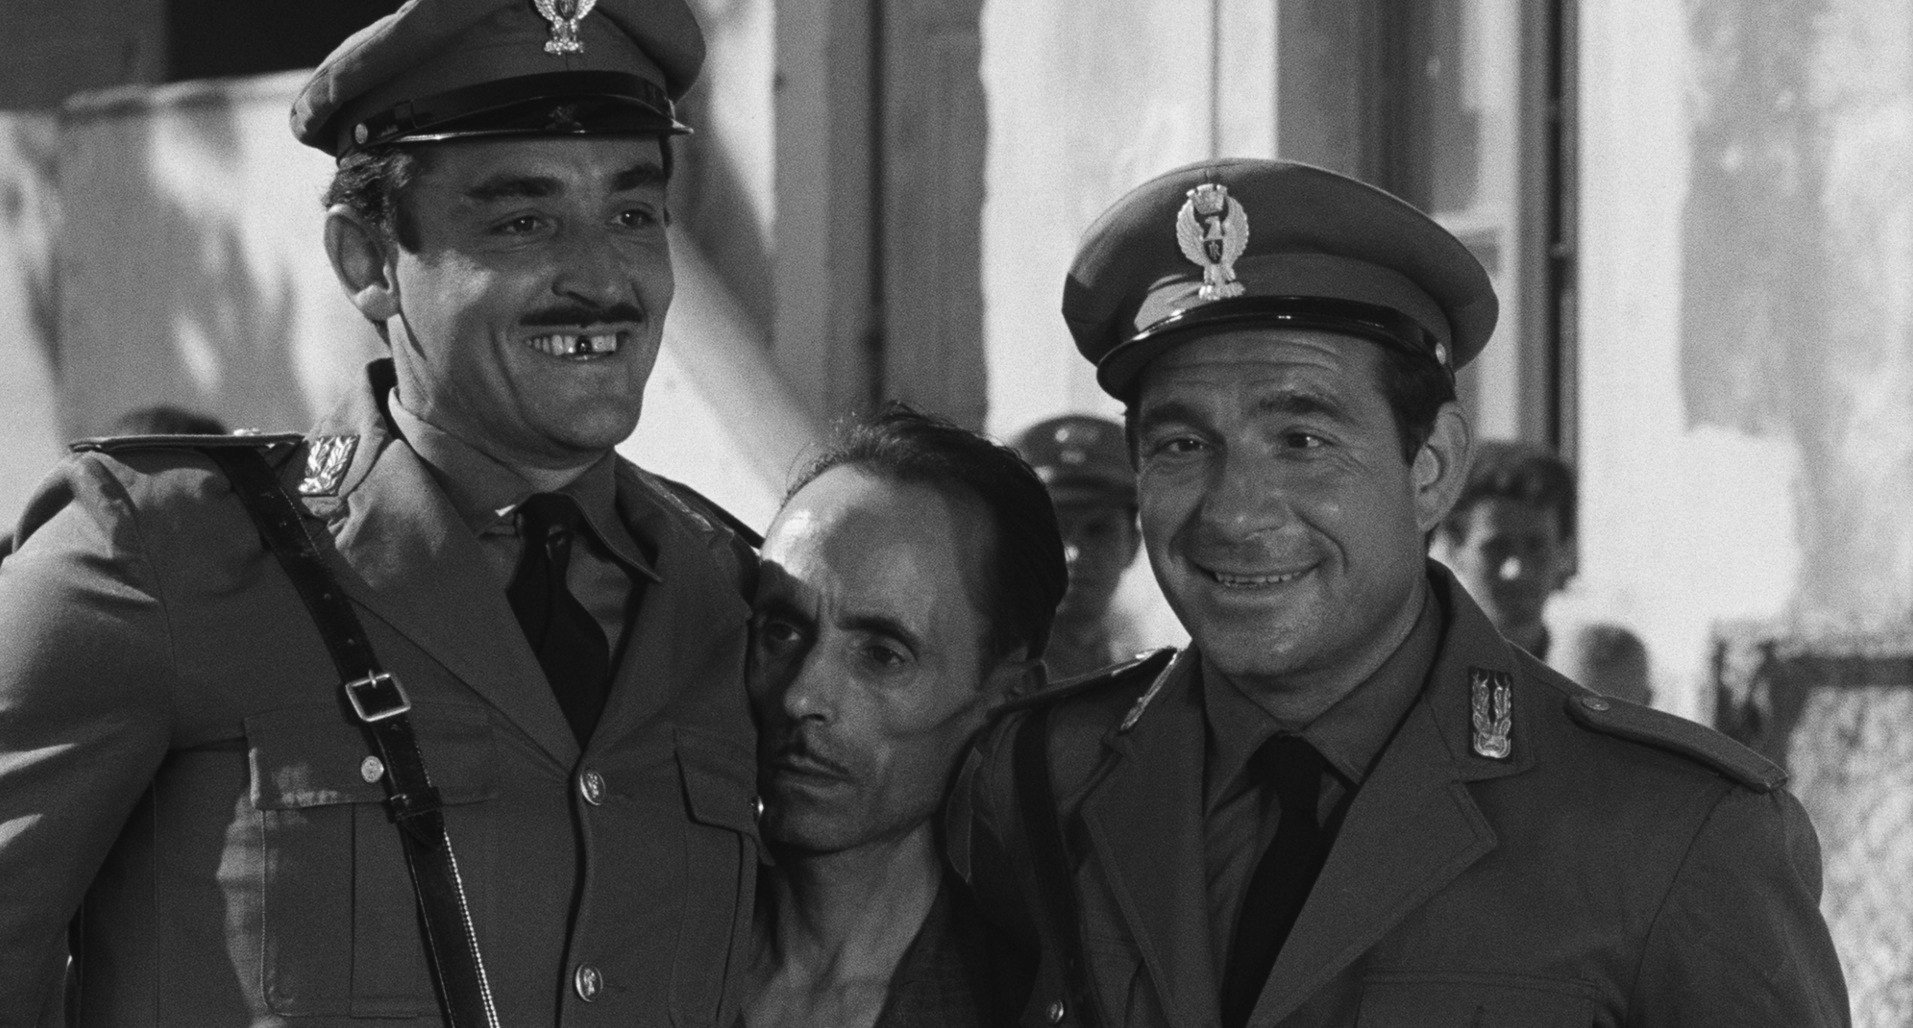 I Mostri (The Monsters). 1963. Italy. Directed by Dino Risi. Courtesy Cineteca di Bologna